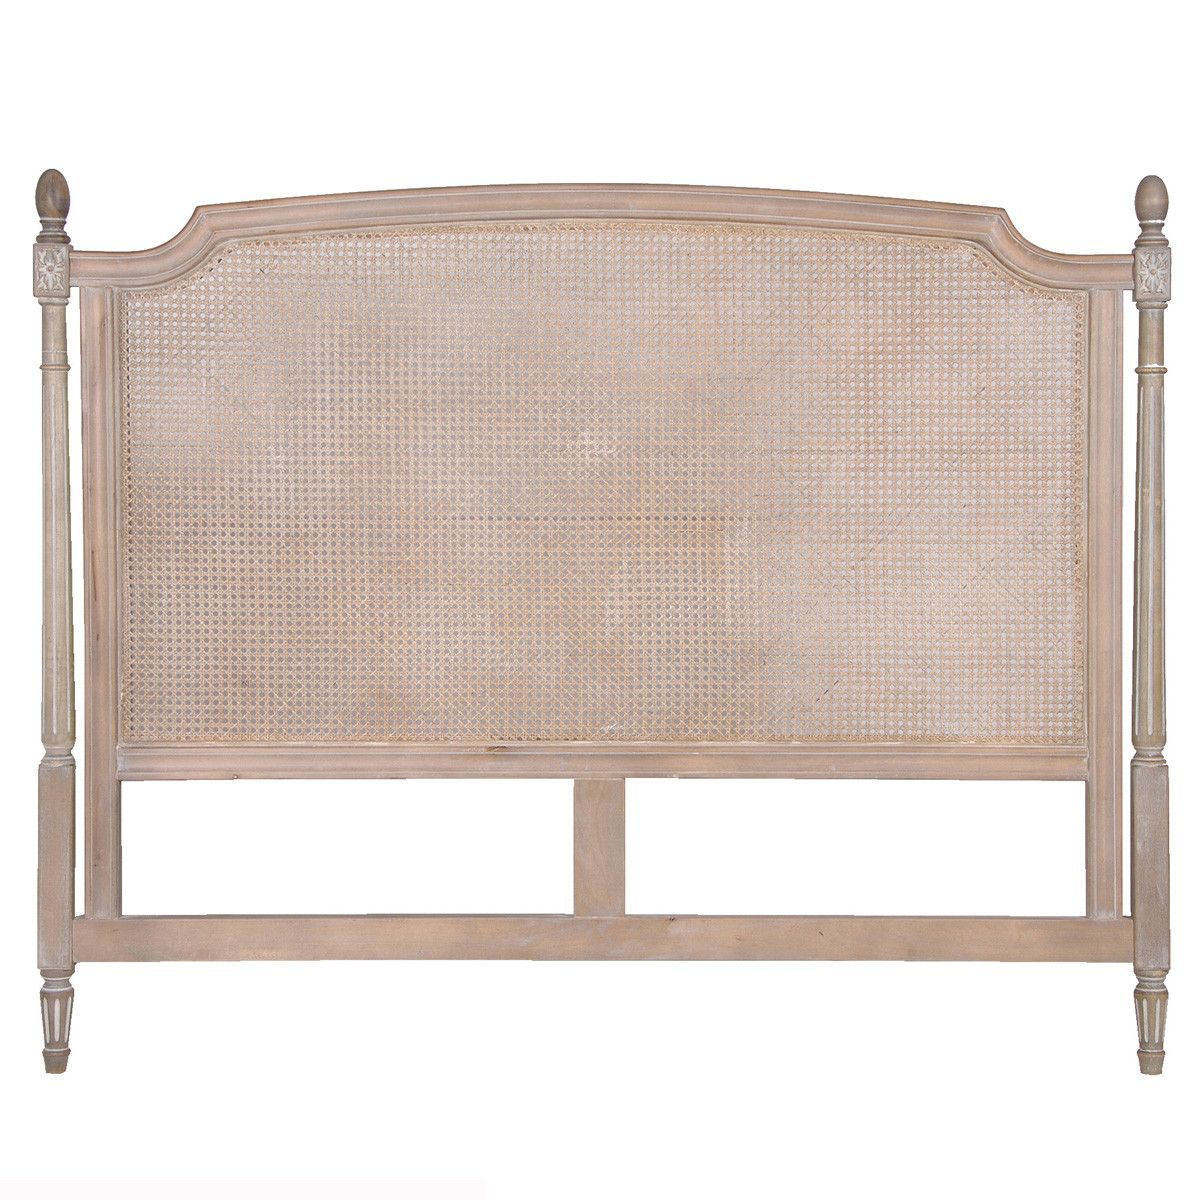 Chic Headboard, Rattan Lime-washed